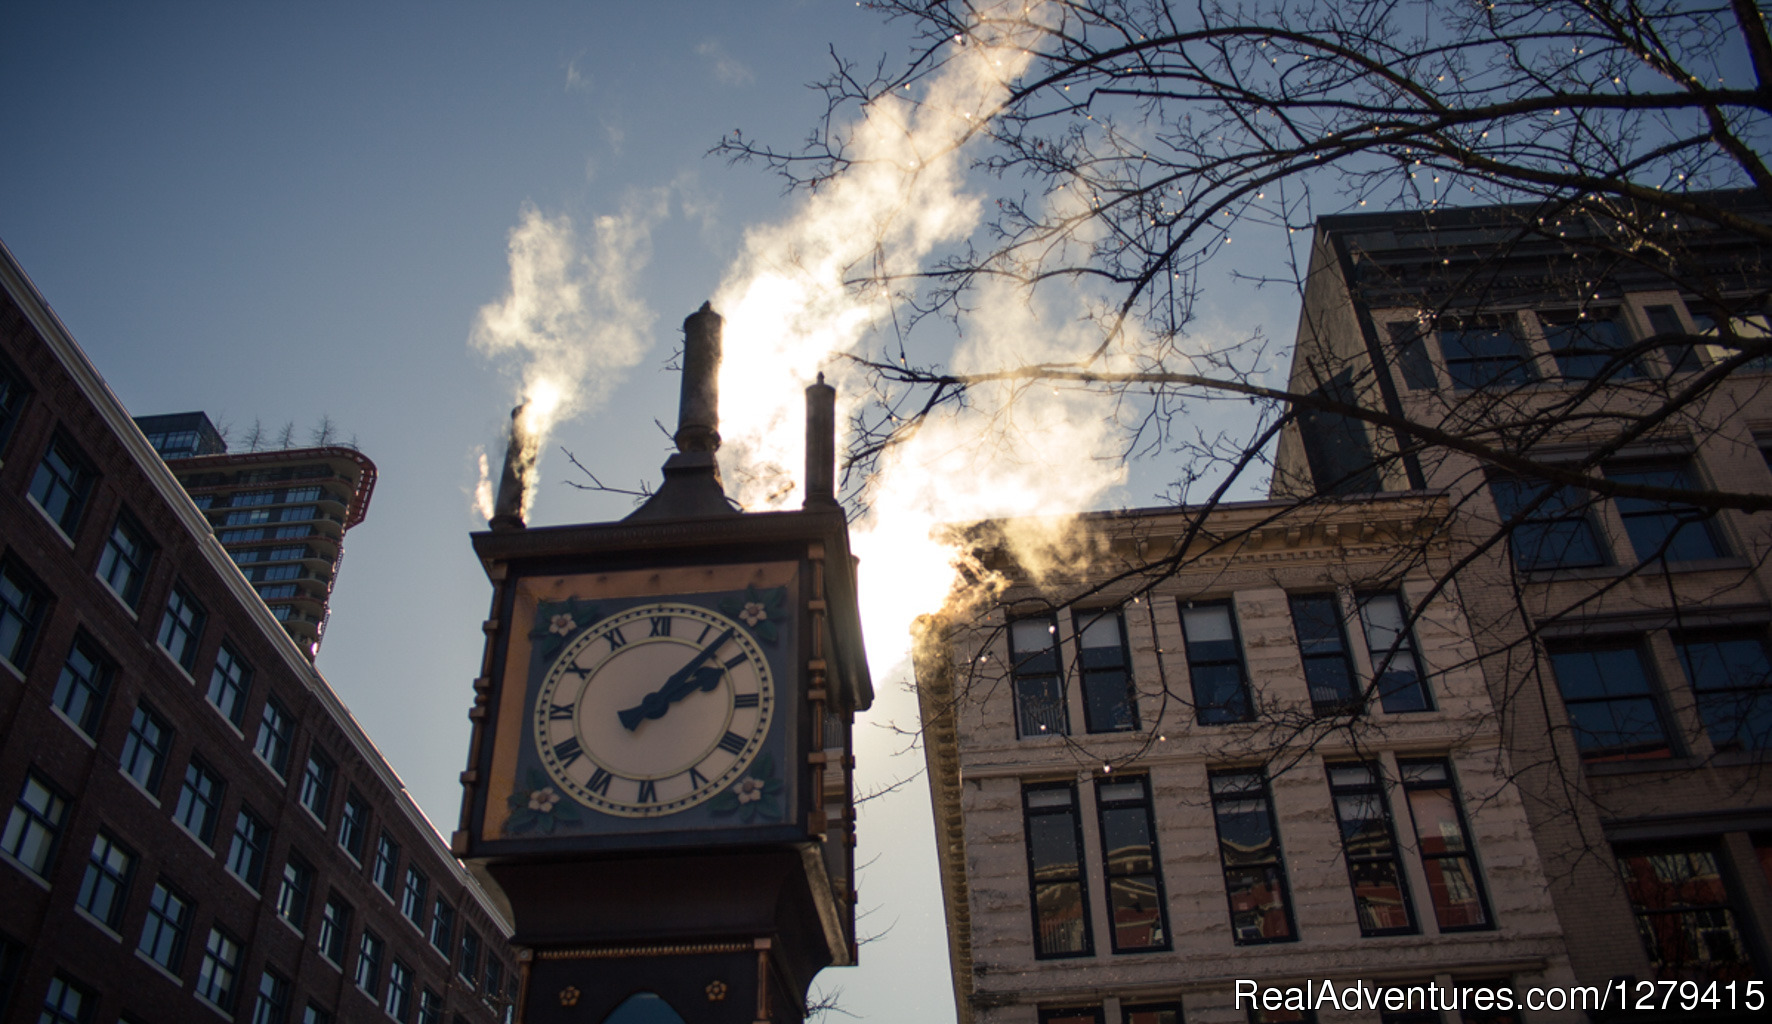 Take epic shots of the famous steam clock